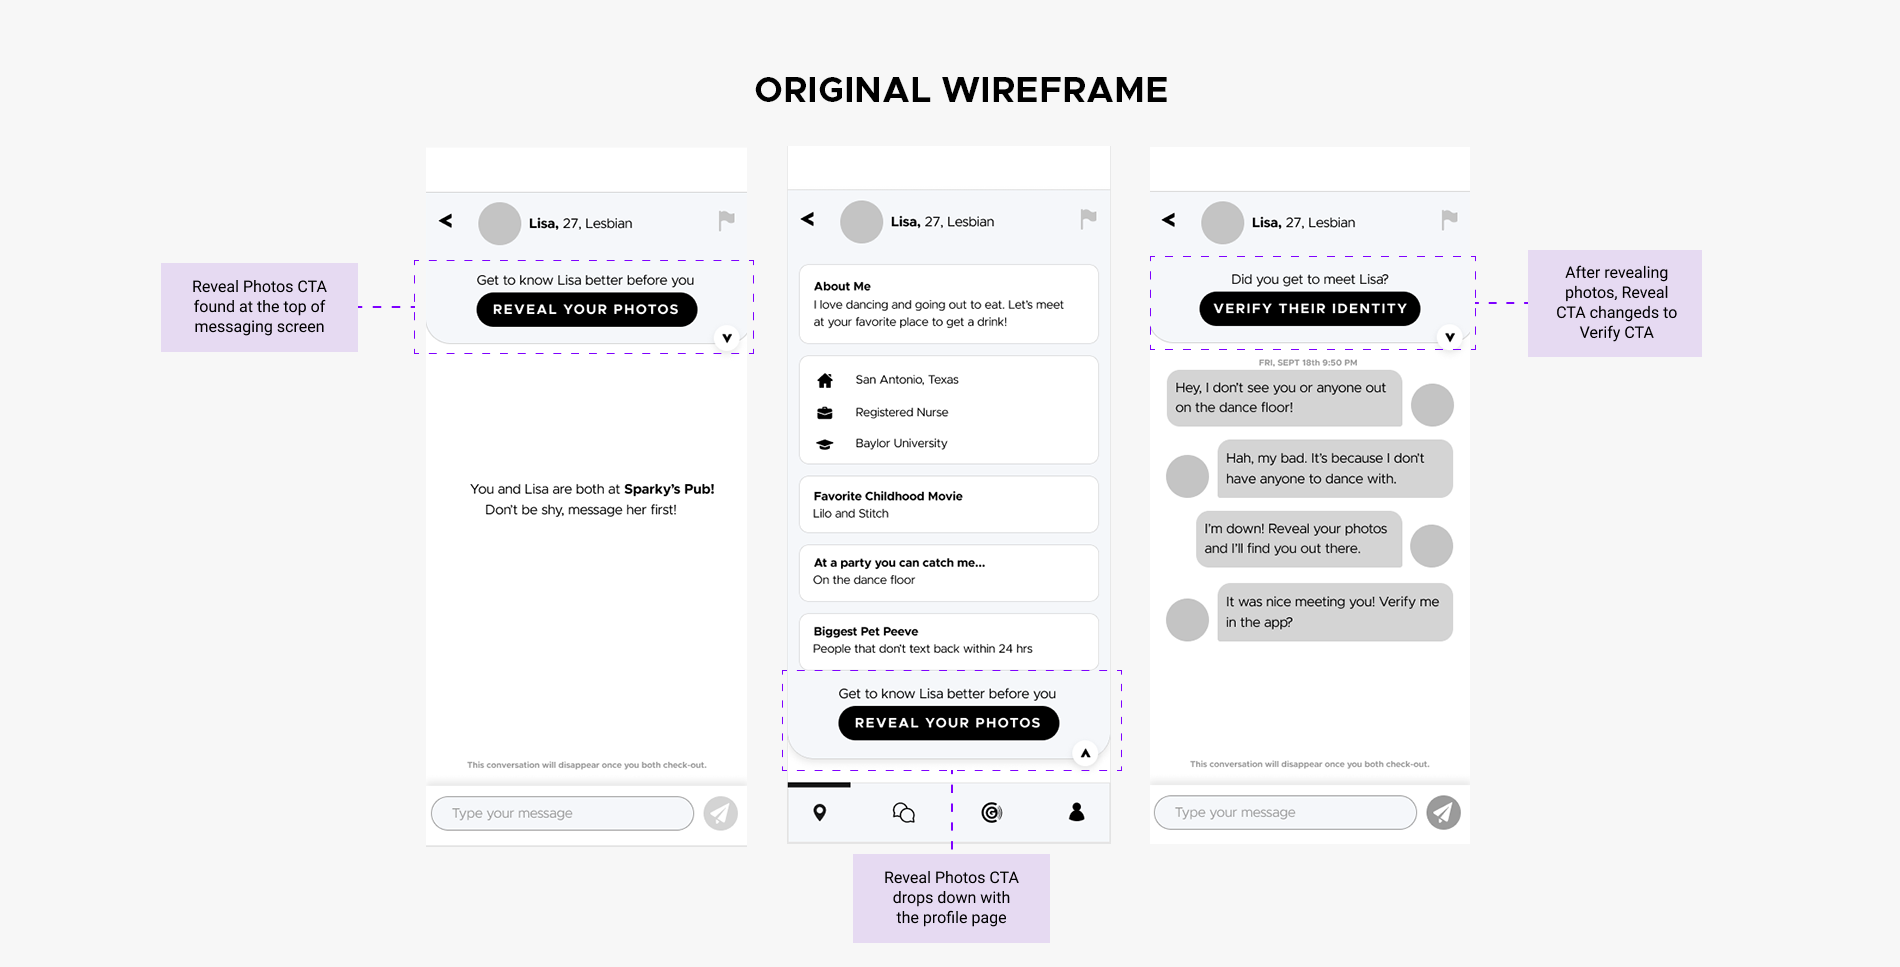 Original-Wireframe-annotated